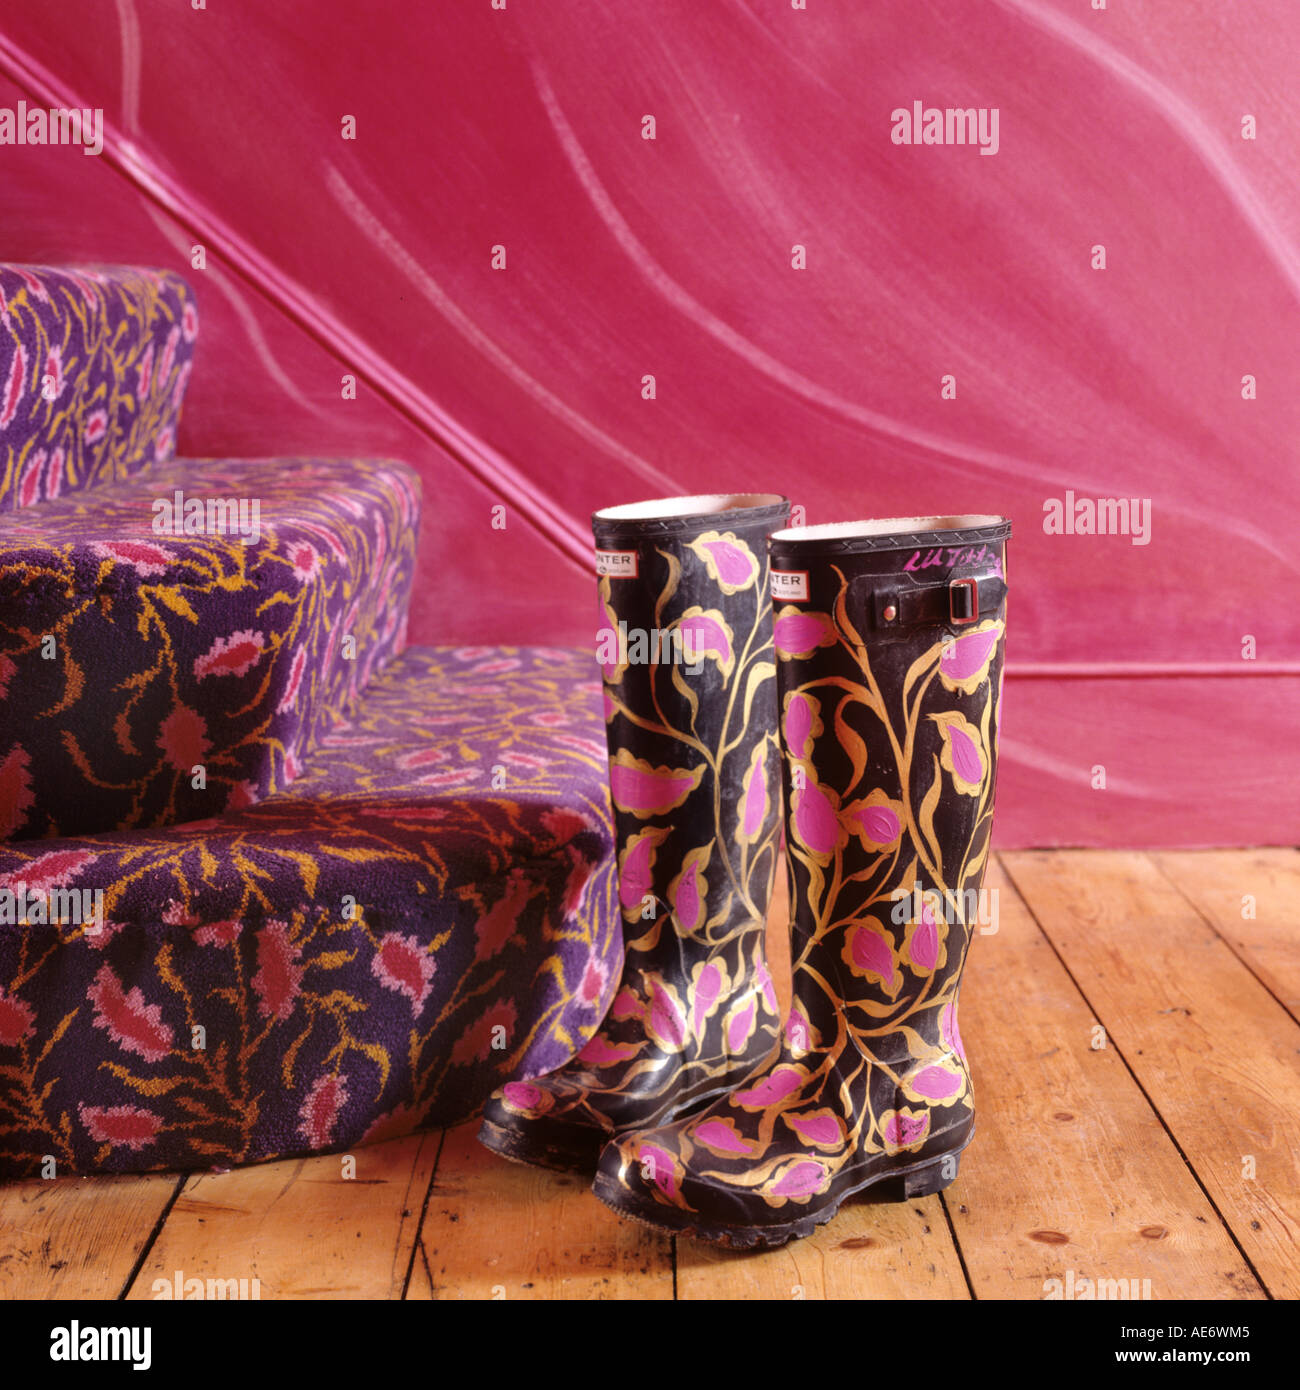 Hand-painted wellington boots by matching carpeted stairs - Stock Image